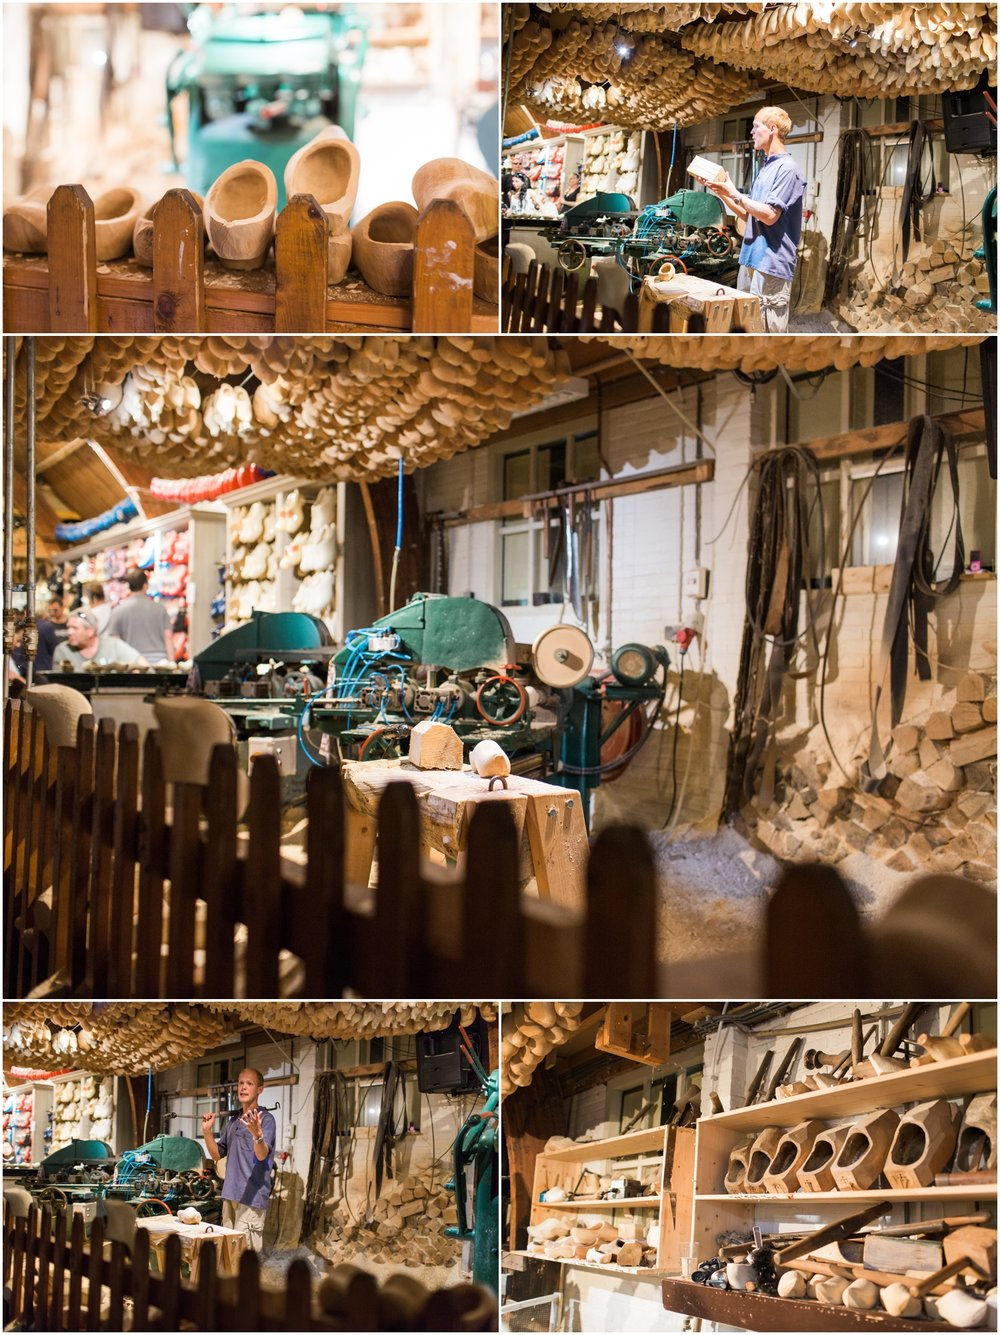 Dutch Wooden Shoe Factory